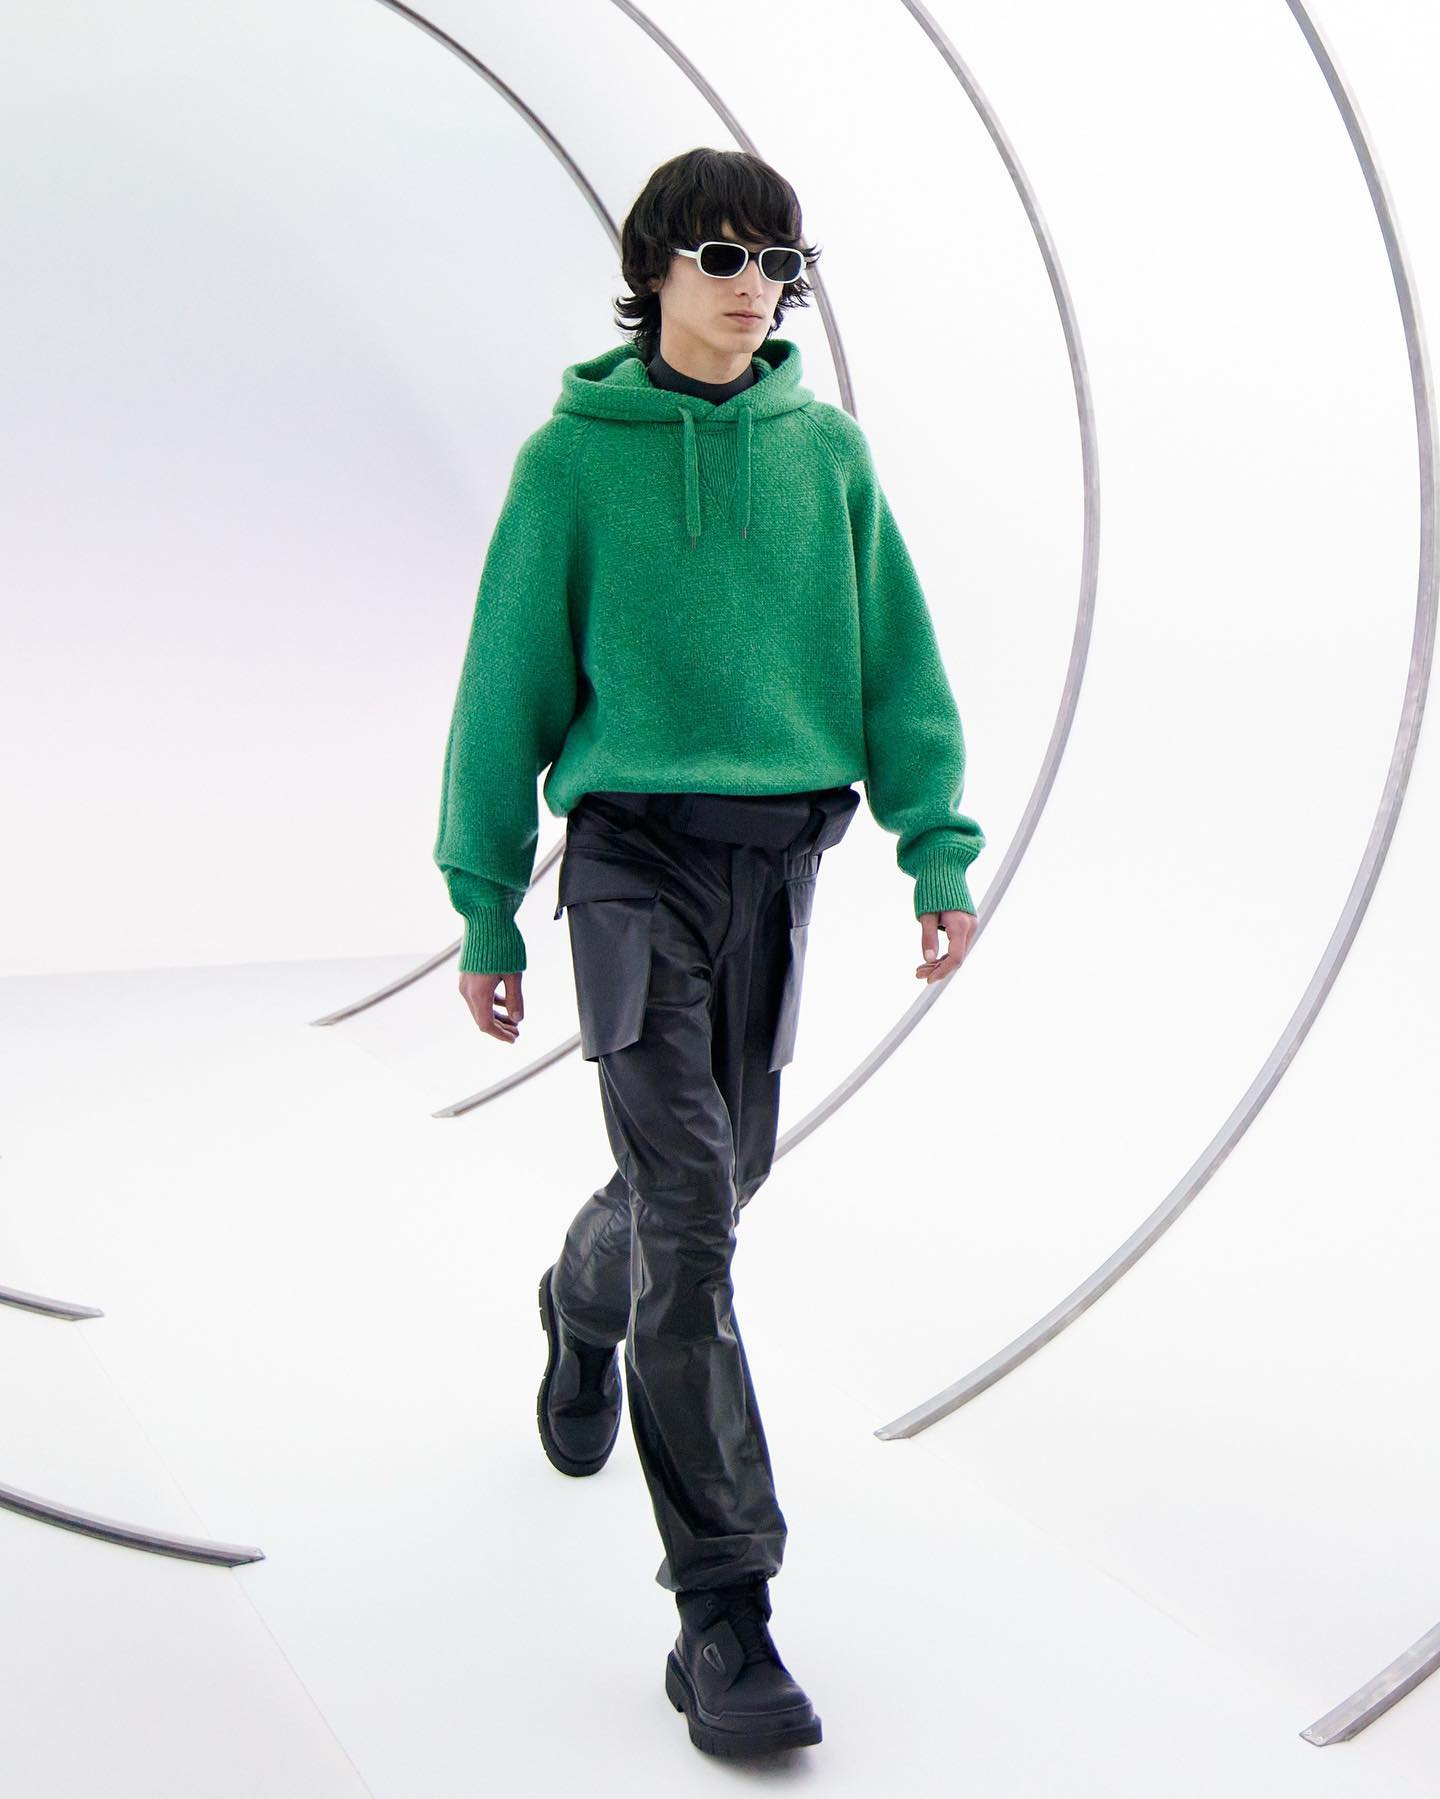 Dries for Salvatore Ferragamo FW21. Styling by Jodie Barnes, casting by DMcasting.